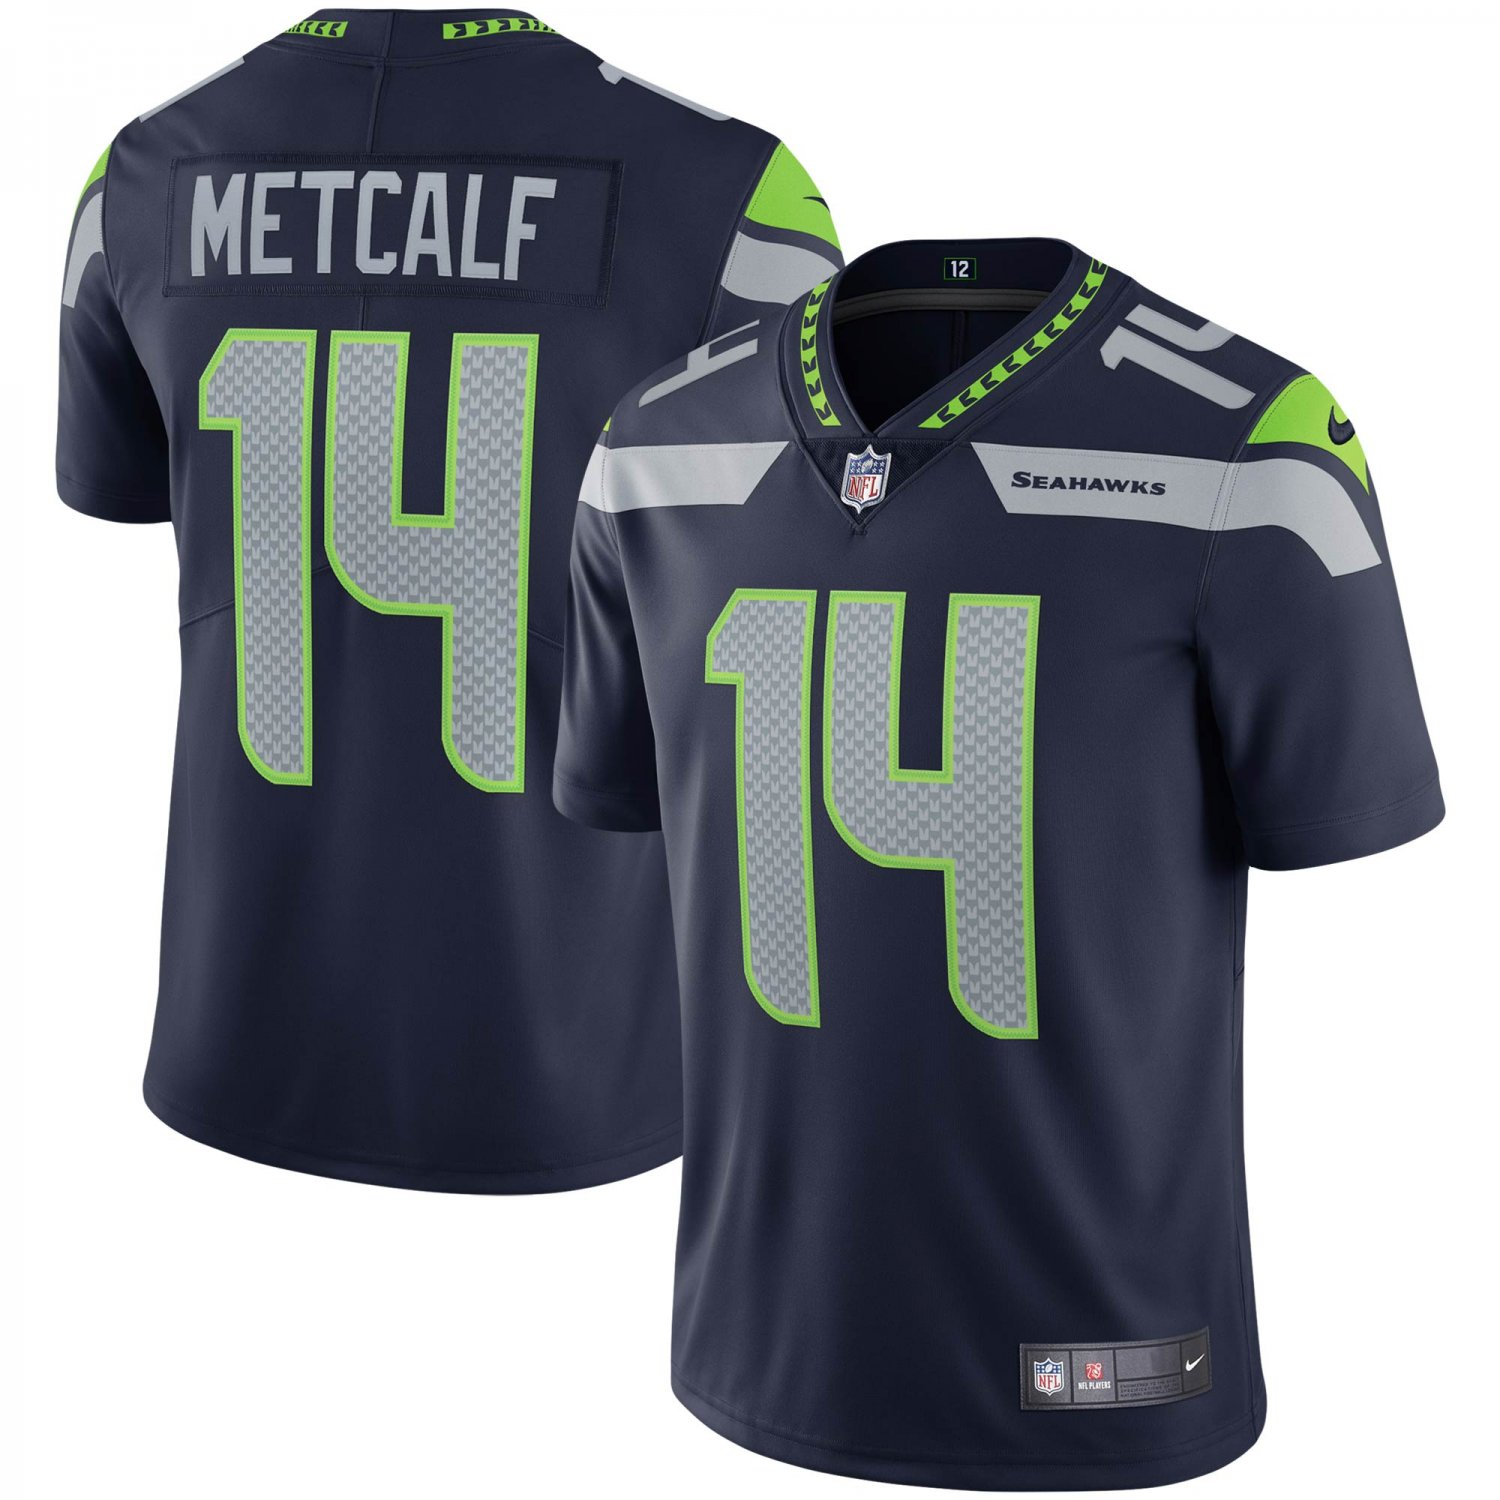 Men's/Youth #14 DK Metcalf Seattle Seahawks Football Vapor Limited Navy Jersey Stitched